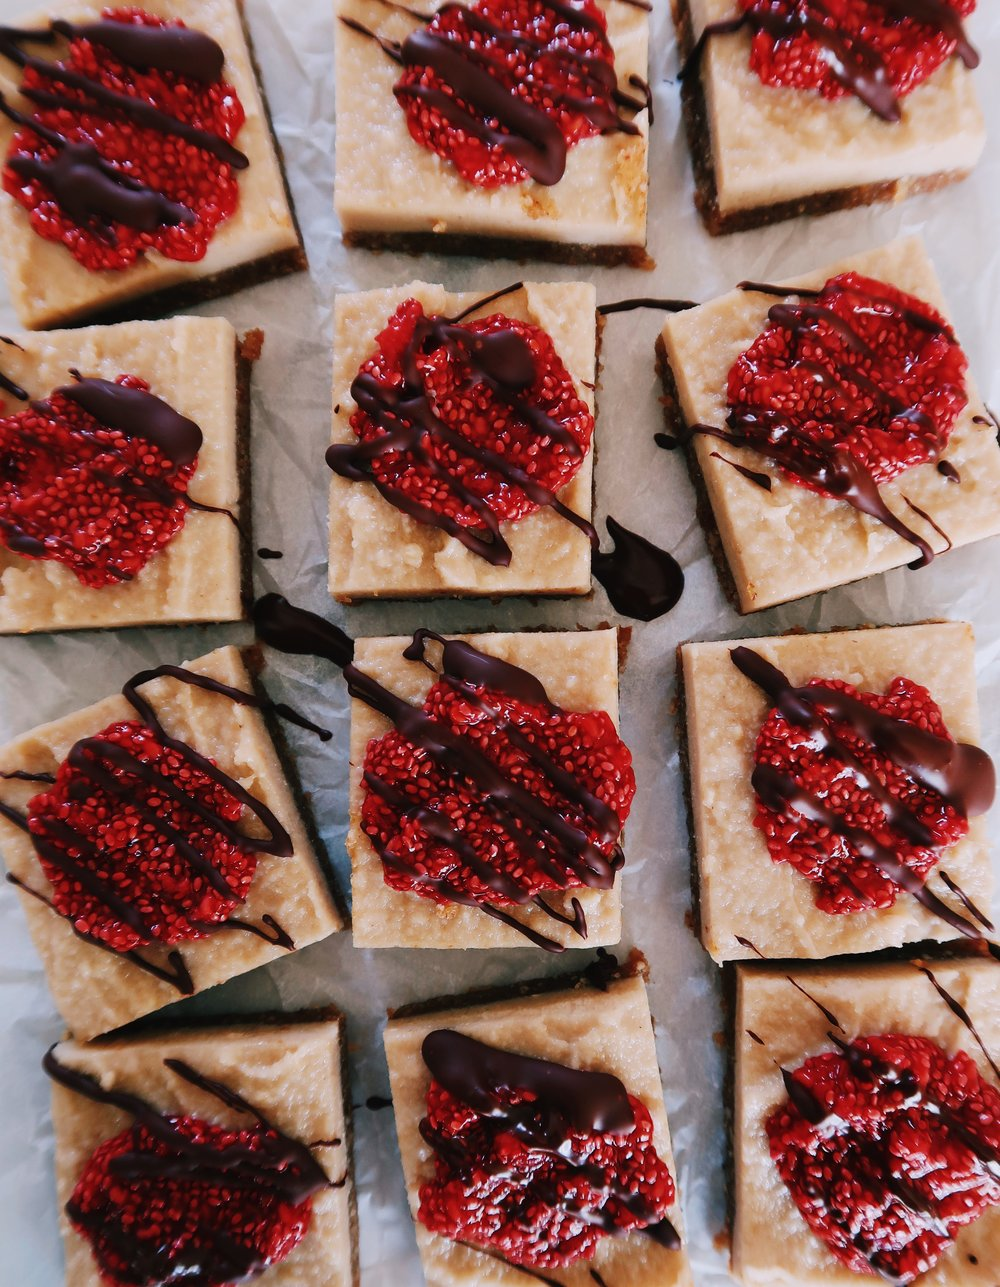 PALEO RASPBERRY CHEESECAKE BARS - INGREDIENTSBASE:1 1/2 cups unsalted walnuts1/2 cup unsalted almonds1/2 cup pitted medjool dates (about 6-7)1/4 cup unsweetened shredded coconutFILLING:3 cups cashews, preferably overnight, or at least 3 hours1/2 cup maple syrup (or honey)Juice of one lemon1/4 melted coconut oil1 tsp vanilla extractTOPPING:1 container organic raspberries1 tb maple syrup4-6 tablespoons chia seeds1 Hu Kitchen chocolate bar of choice (I used the Cashew Butter + Raspberry Jelly Bar)